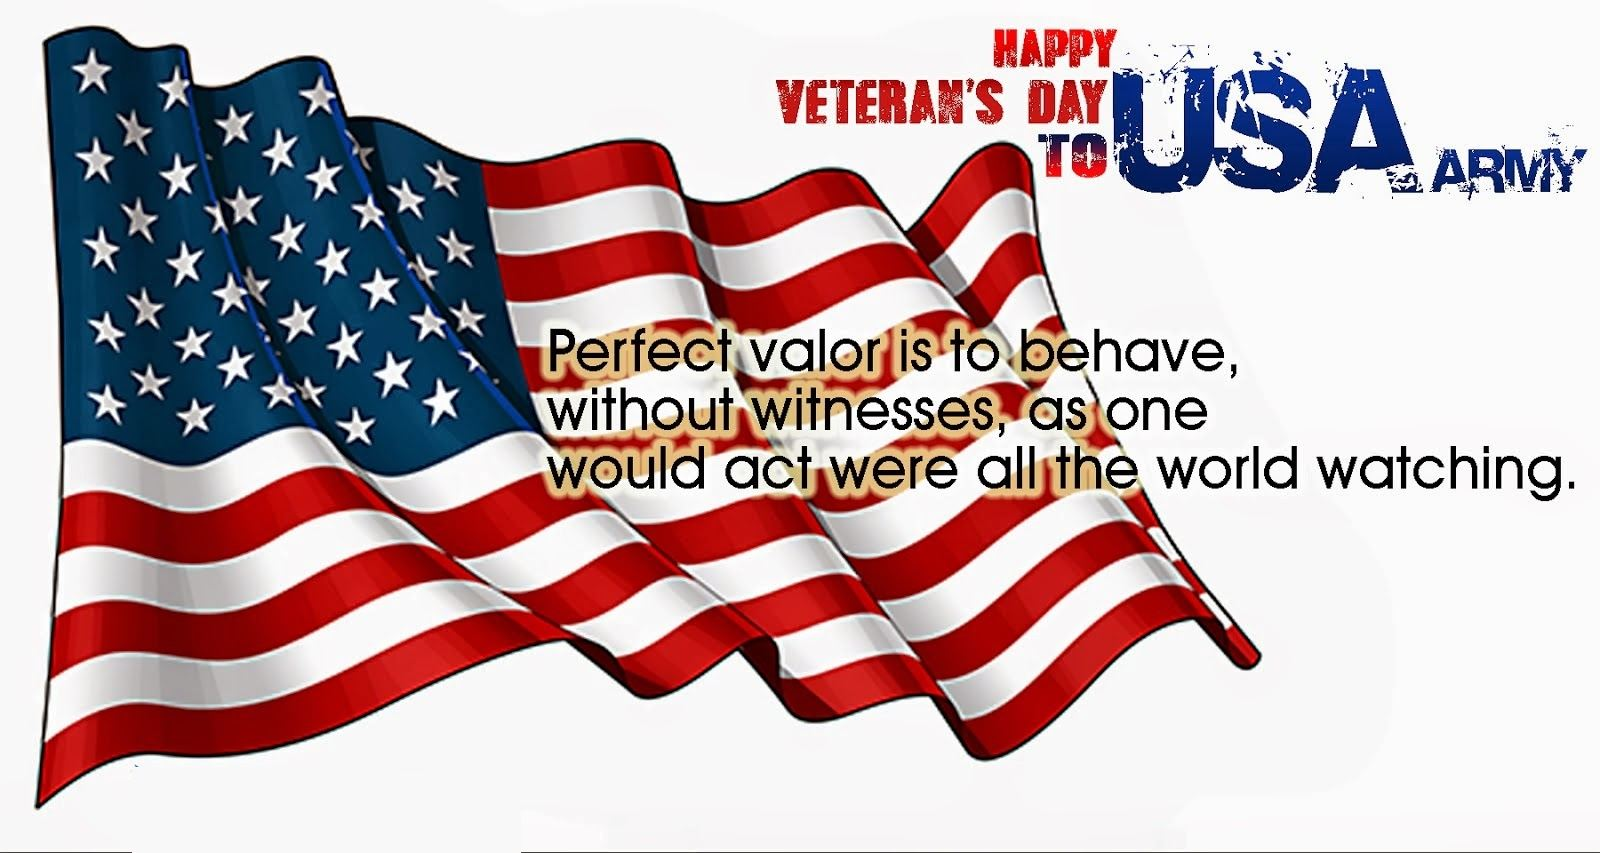 Veterans Day SMS Messages